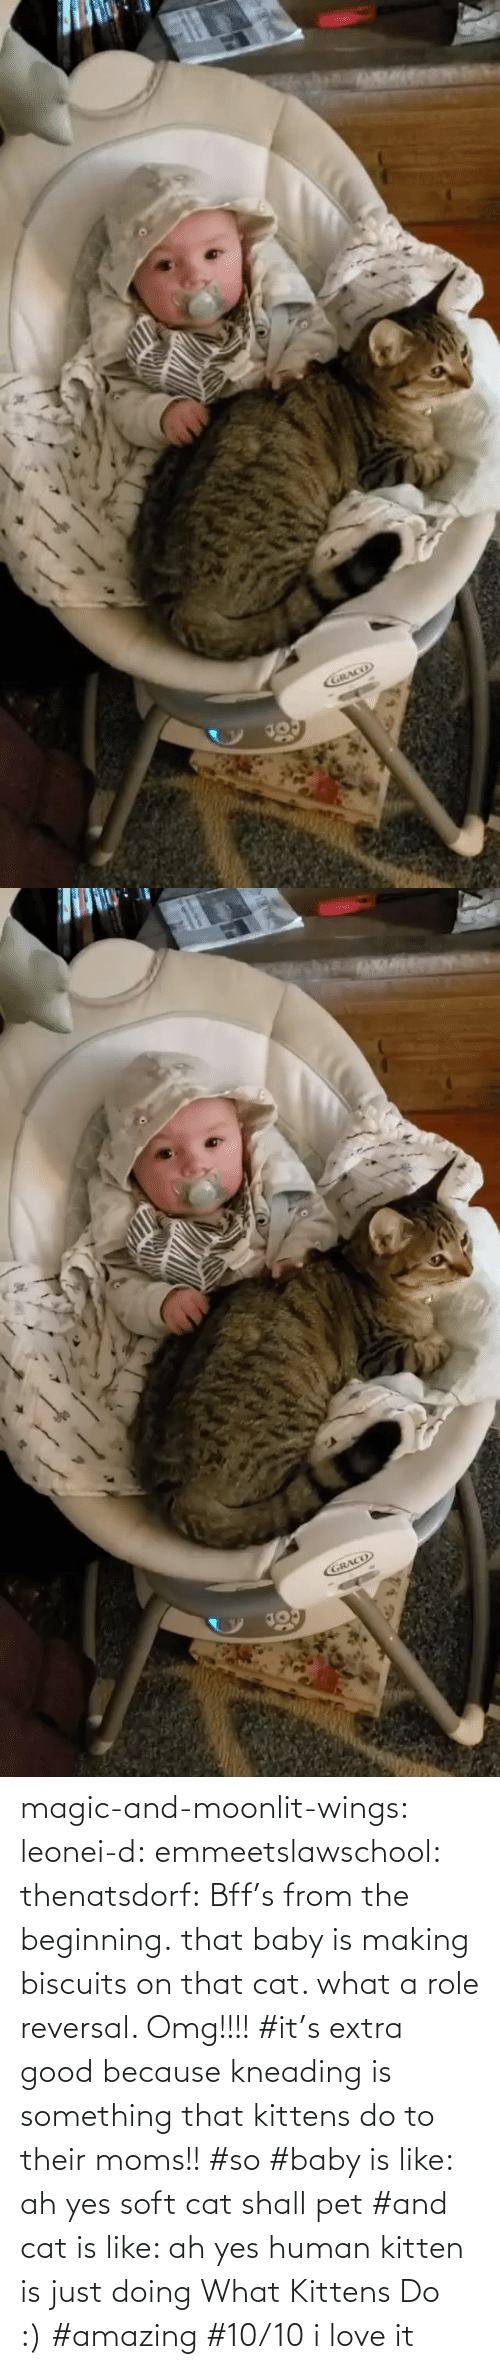 Beginning: magic-and-moonlit-wings: leonei-d:  emmeetslawschool:  thenatsdorf: Bff's from the beginning. that baby is making biscuits on that cat. what a role reversal.    Omg!!!!     #it's extra good because kneading is something that kittens do to their moms!! #so #baby is like: ah yes soft cat shall pet #and cat is like: ah yes human kitten is just doing What Kittens Do :) #amazing #10/10 i love it